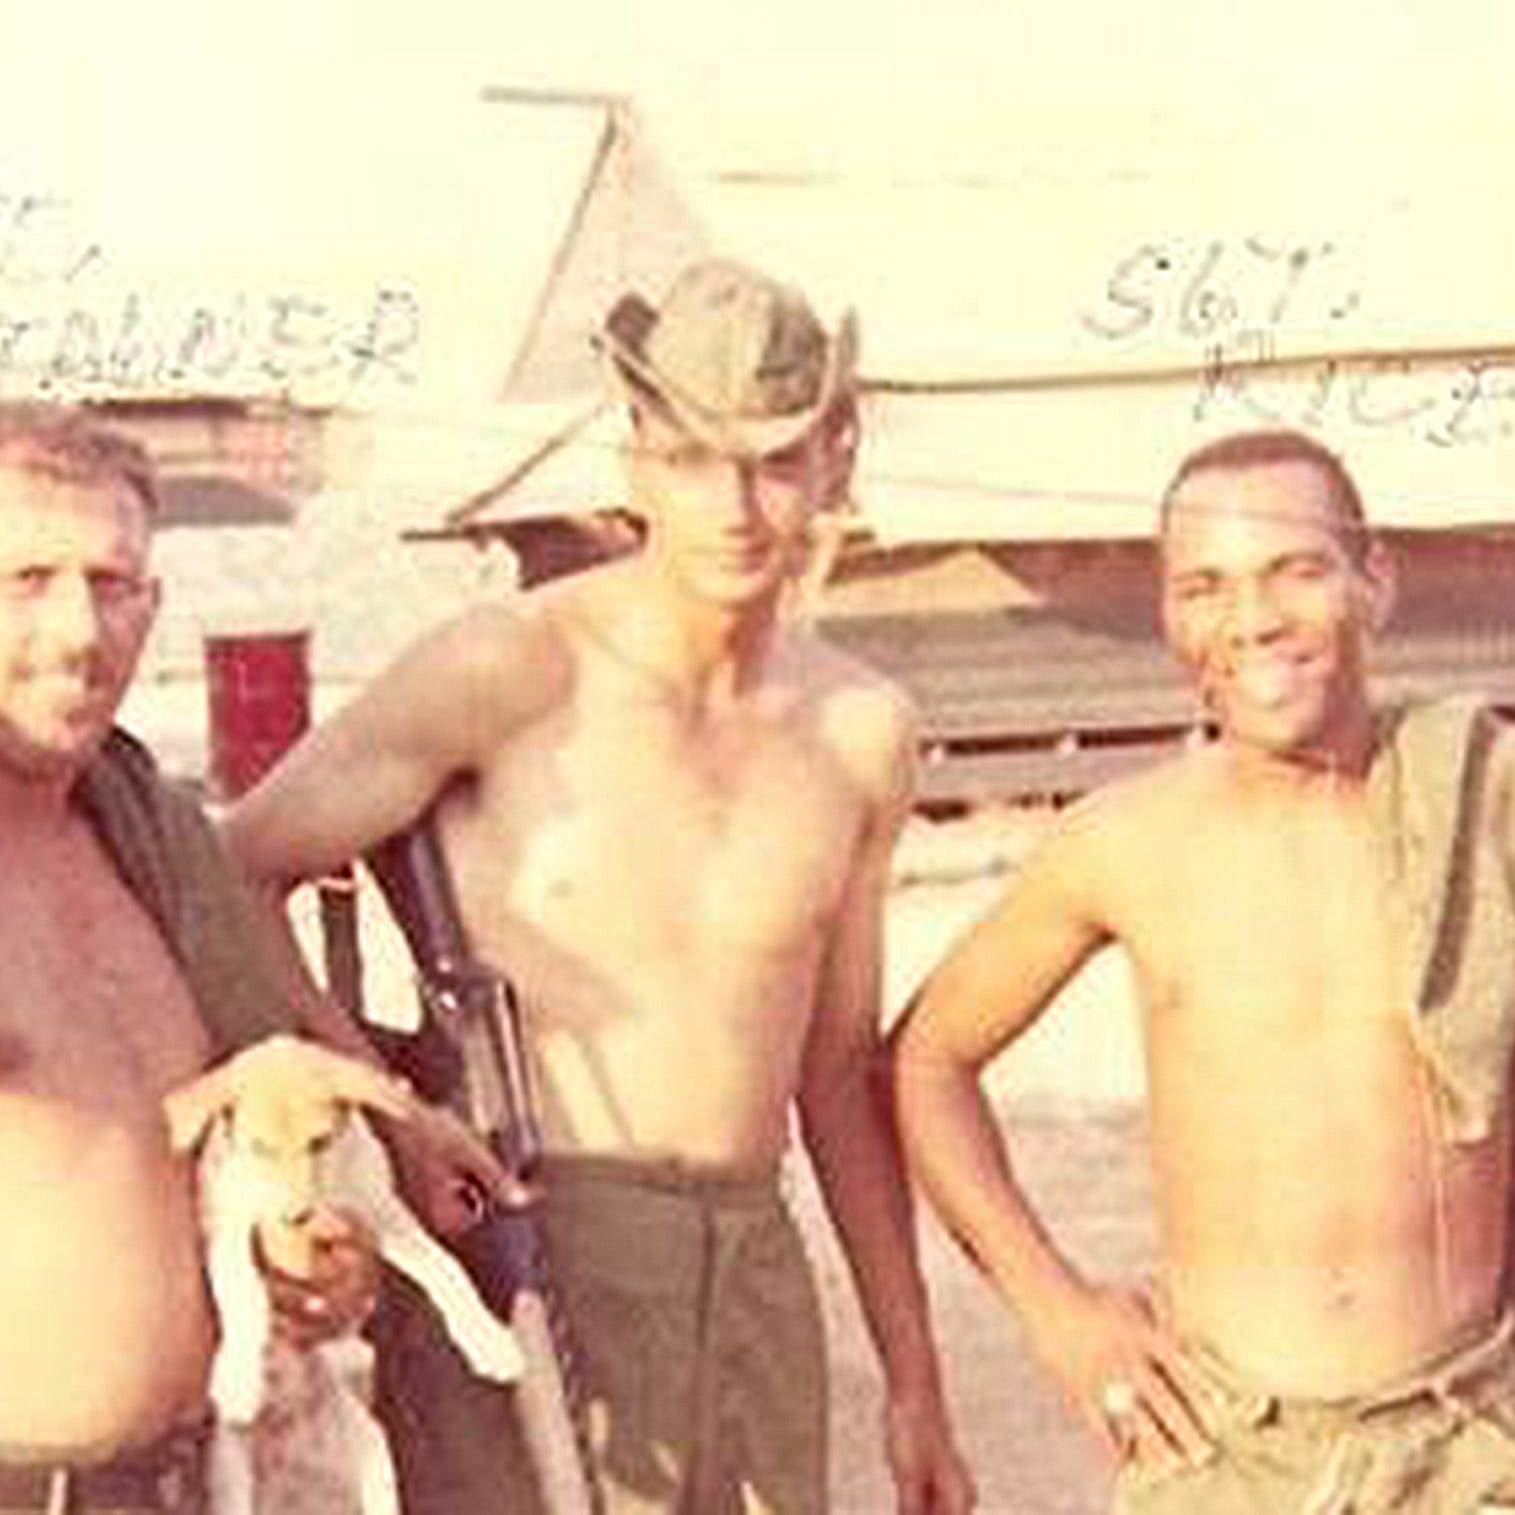 Sgt. Rice died a hero in the Vietnam War. But for 50 years, his family had no idea.